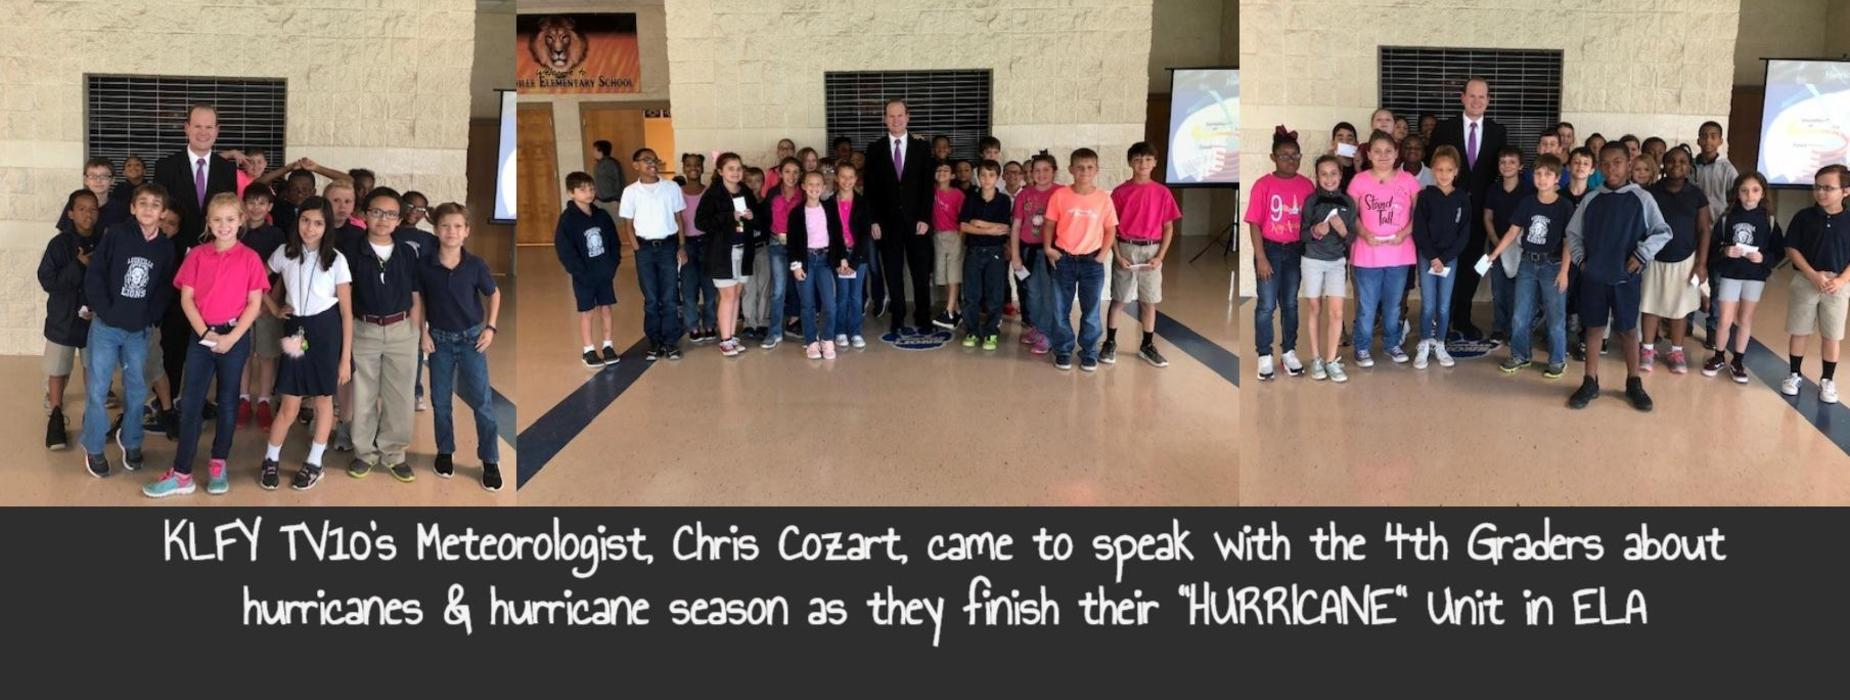 KLFY TV10's Meteorologist, Chris Cozart, came to speak with the 4th Graders about hurricanes & hurricane season as they finish their